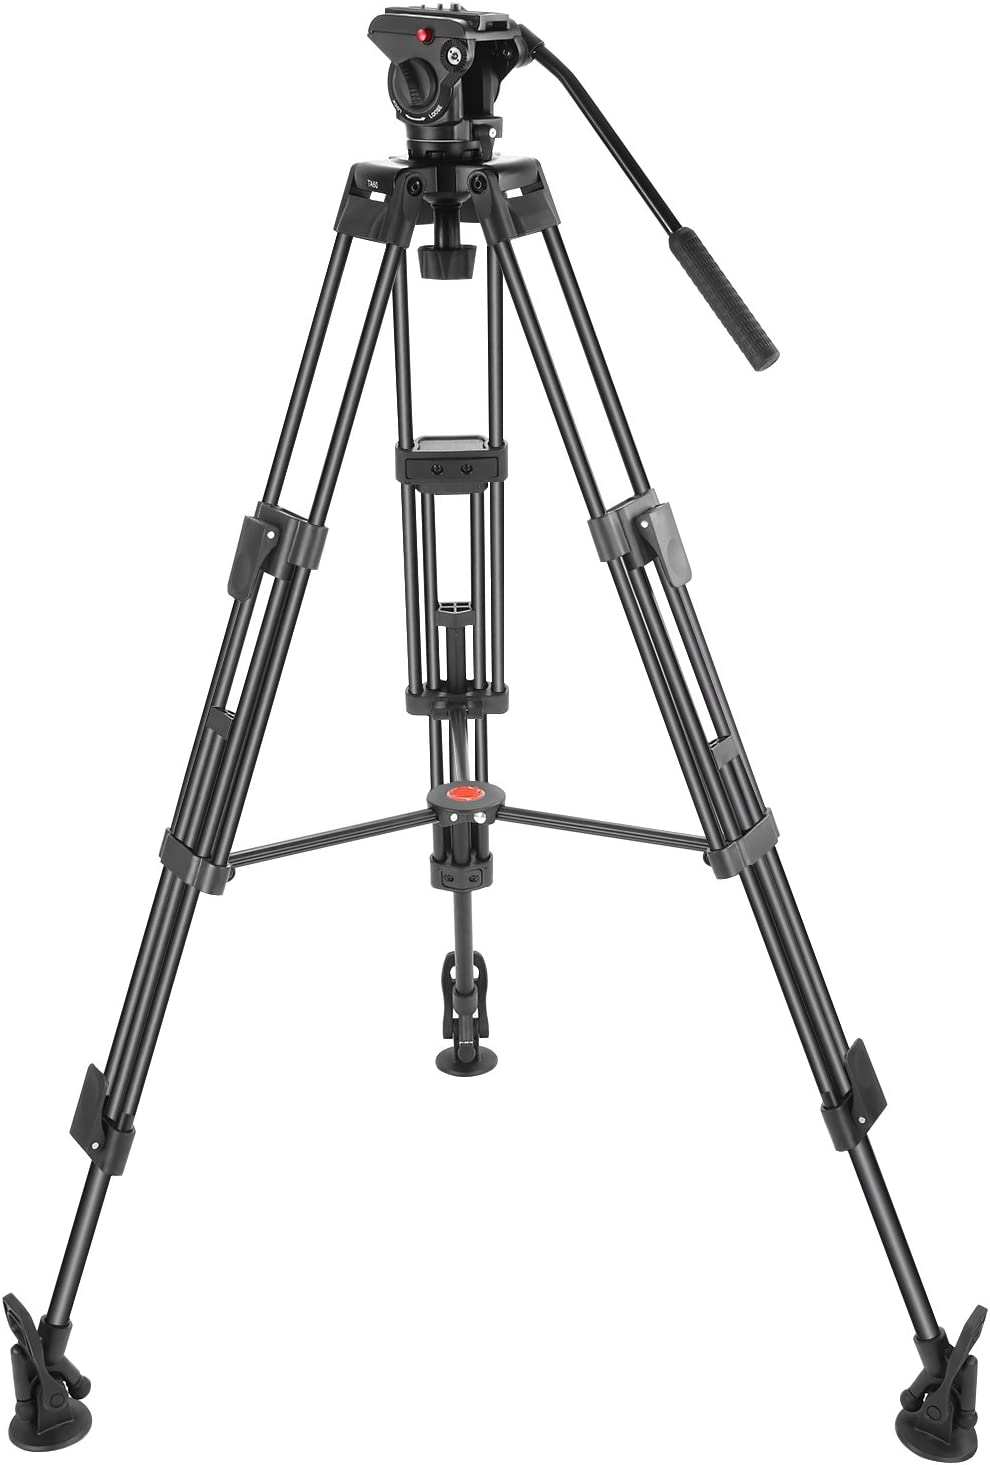 Neewer Professional Challenge the lowest Shipping included price Heavy Duty Video Camera 163 inches 64 Tripod